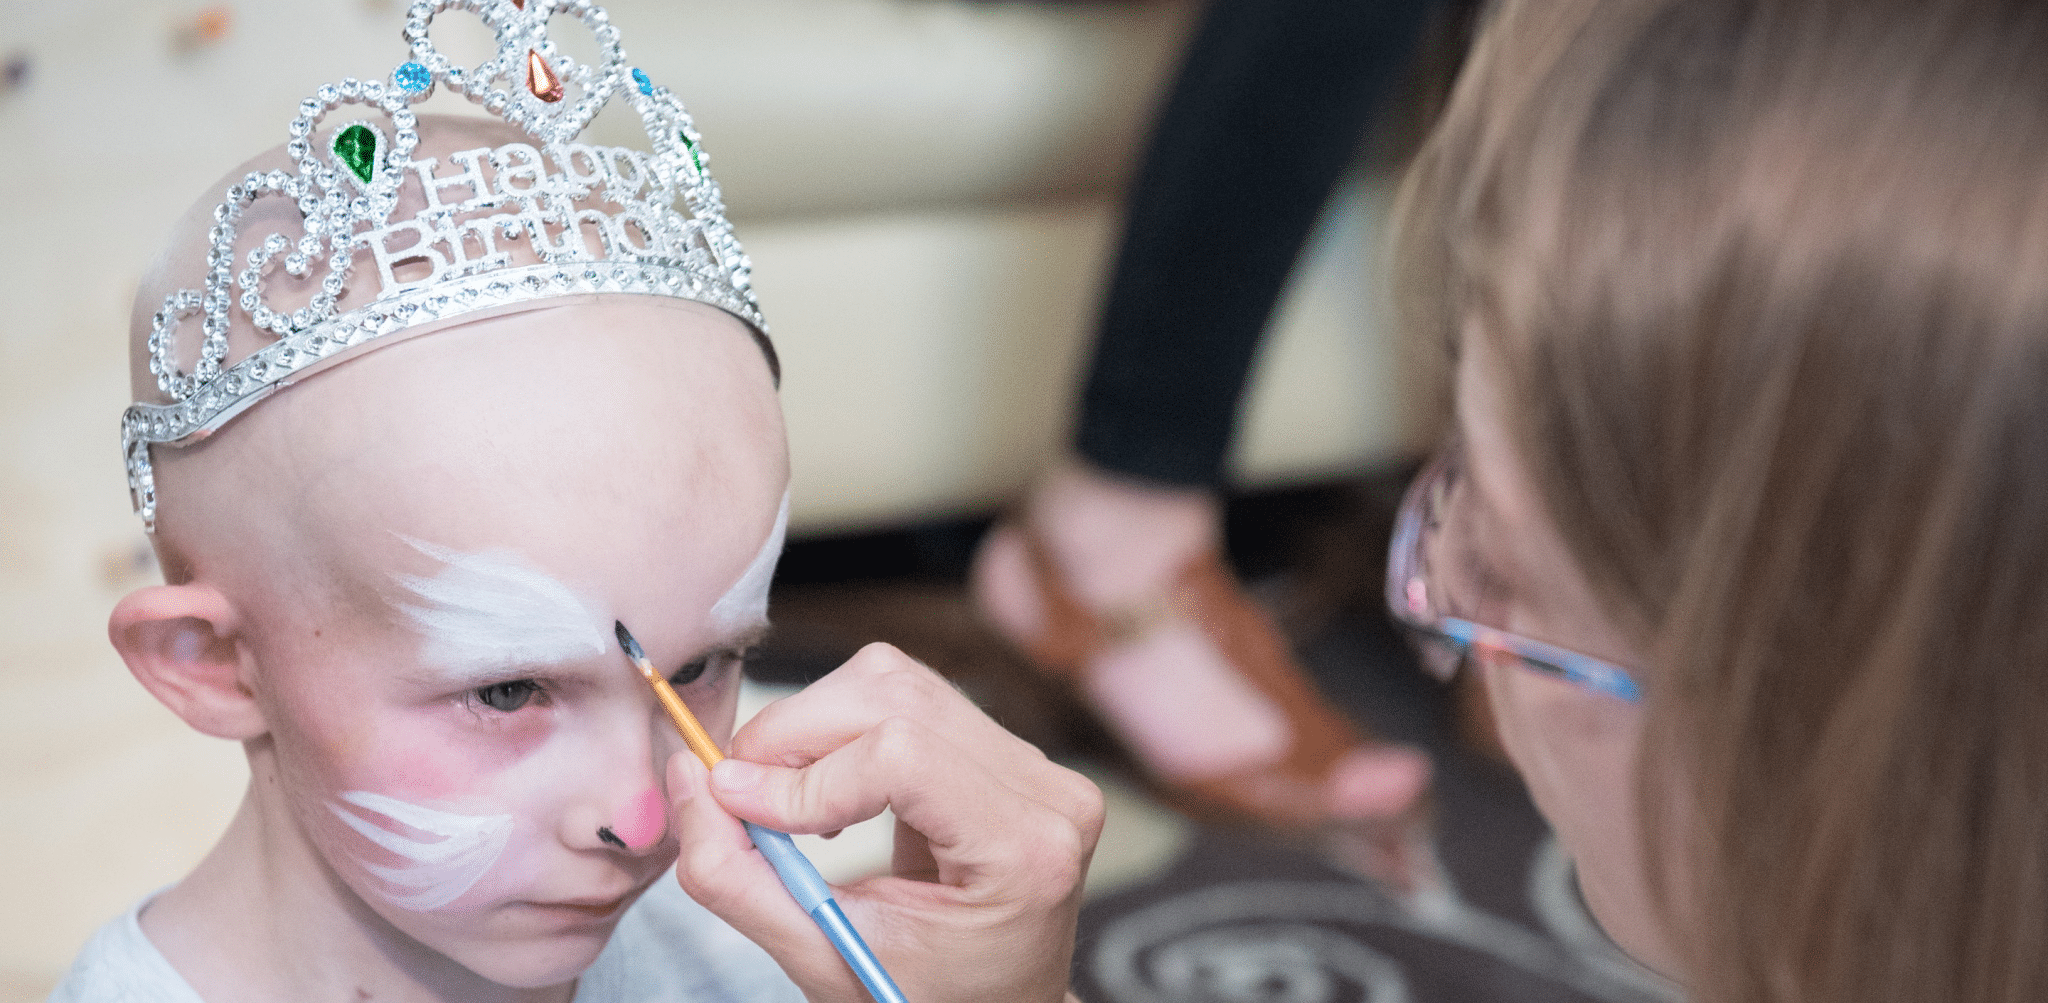 Young girl with no hair having face painted